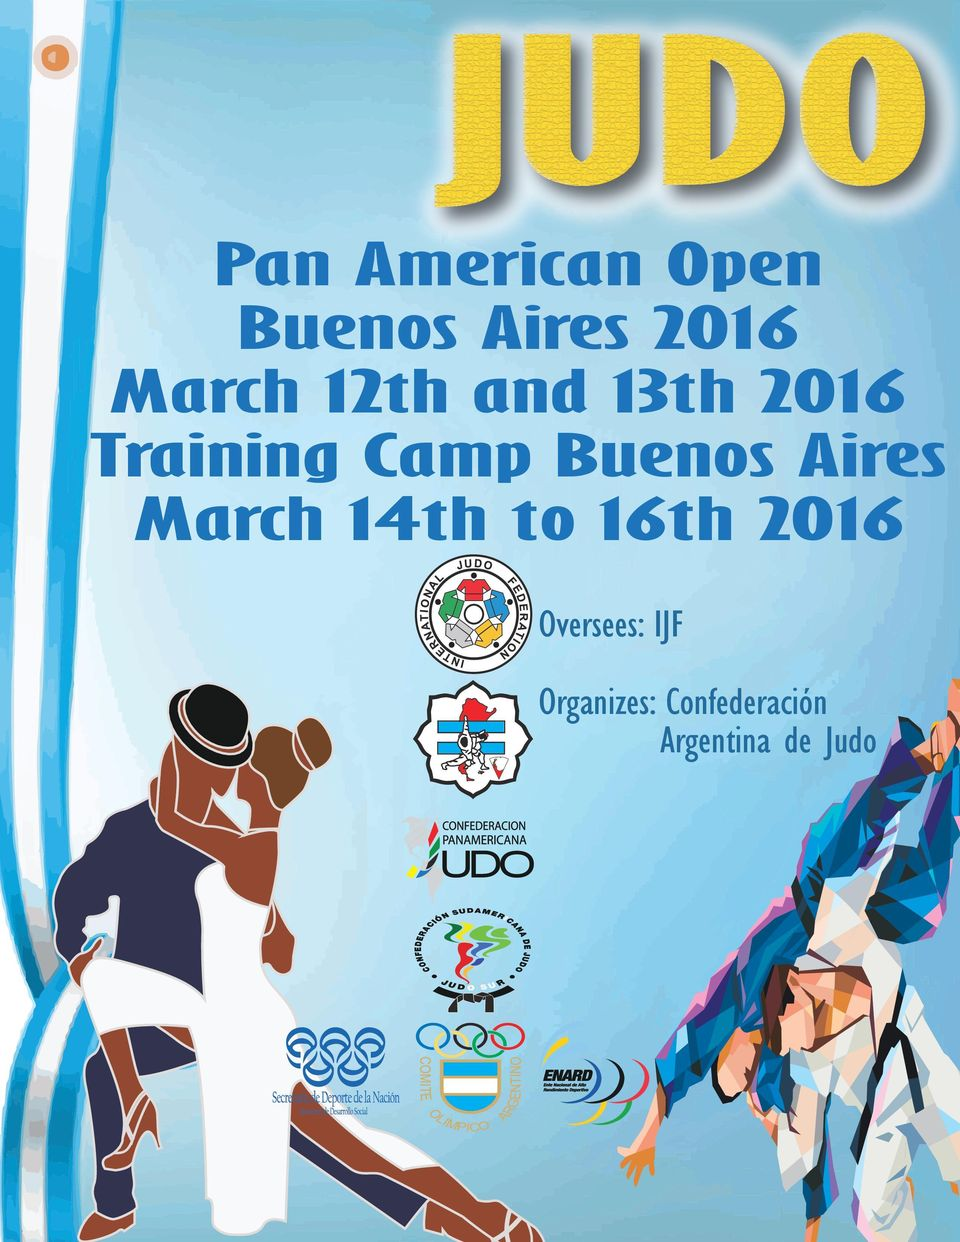 Aires March 14th to 16th 2016 Oversees: